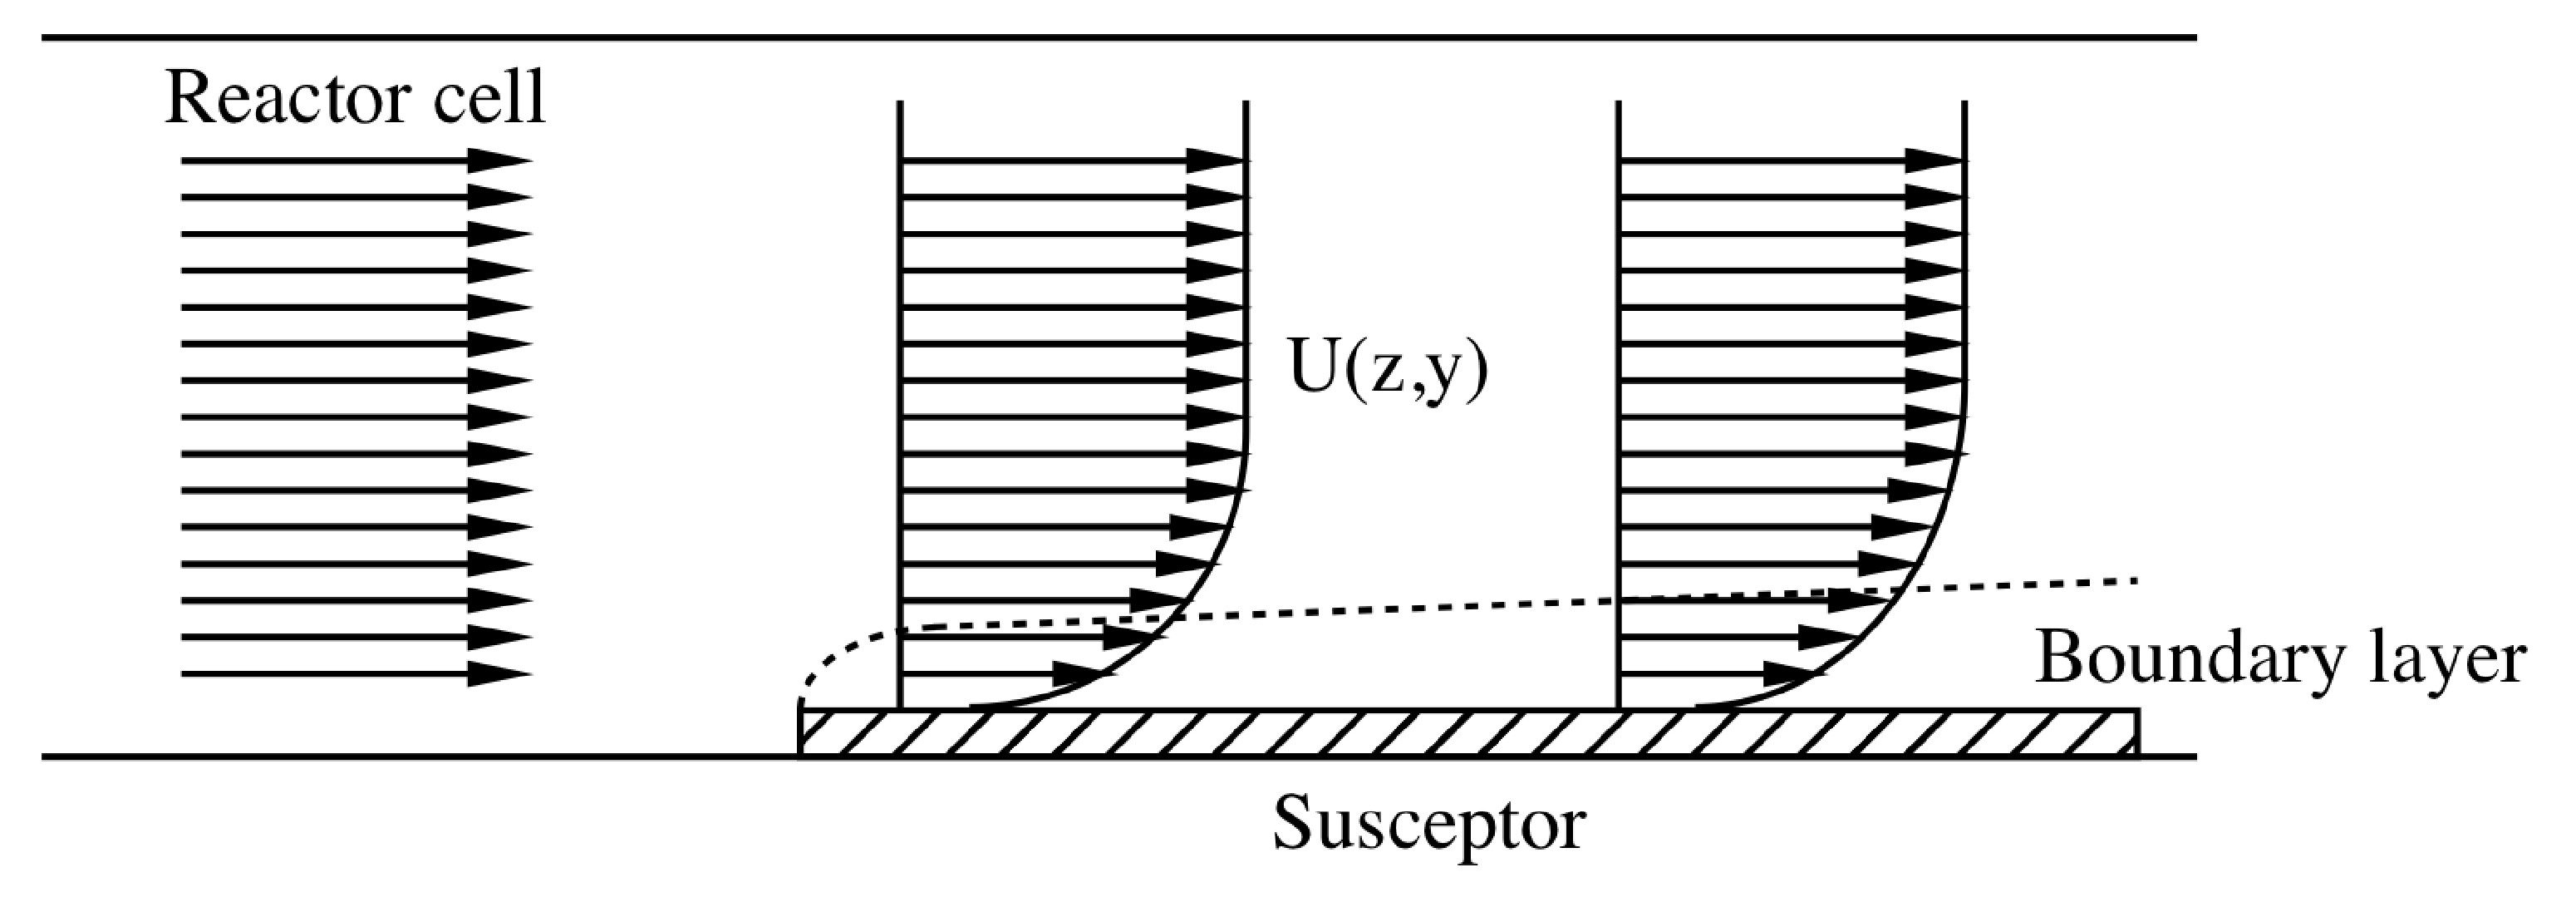 Rate limiting steps, Chemical vapor deposition, By